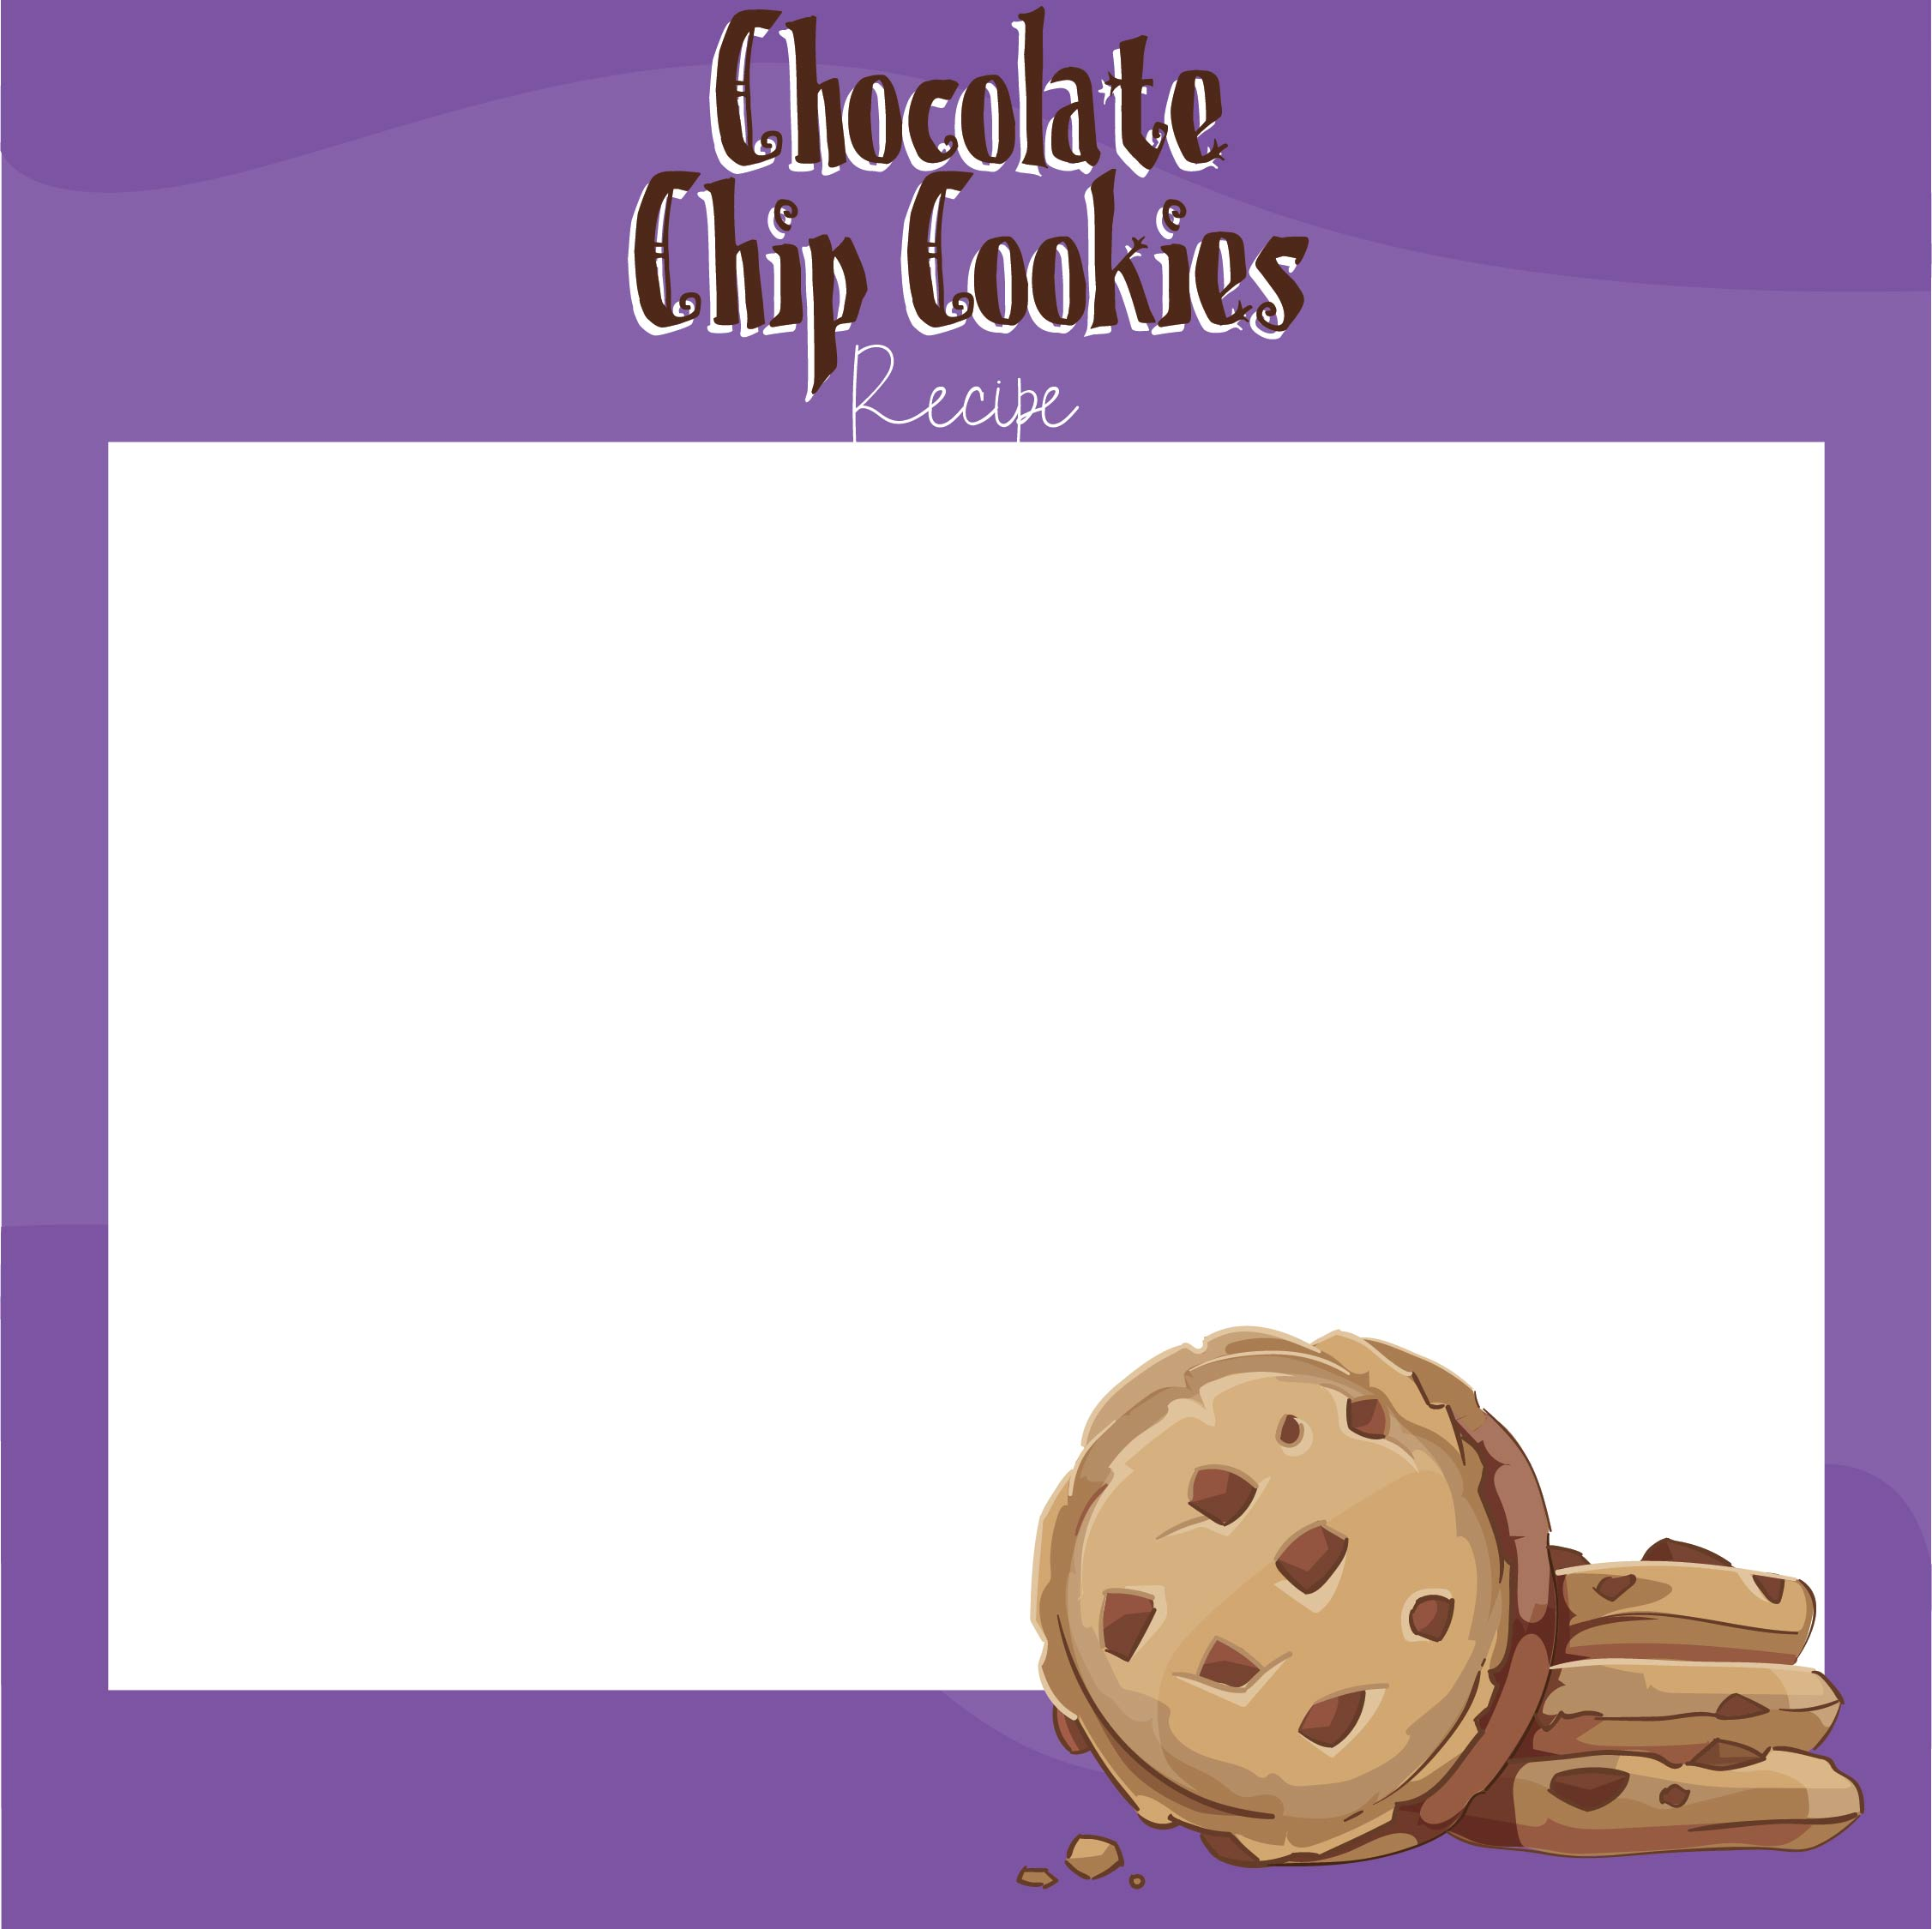 Chocolate Chip Cookies Recipes Cards Printable for Kids